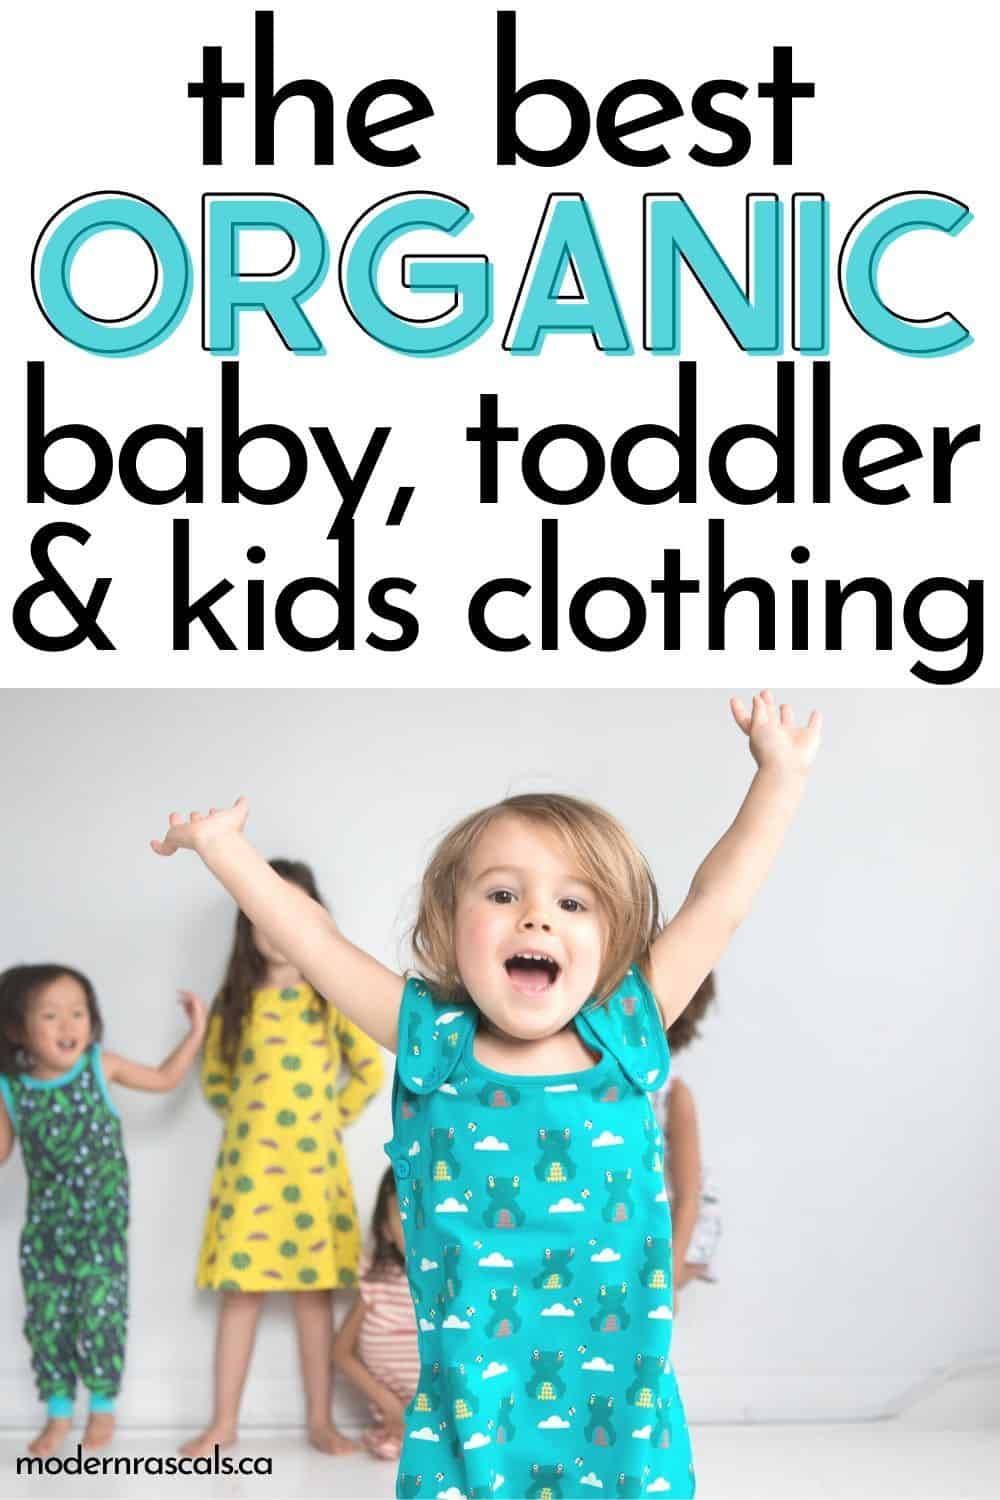 The Best Organic Clothing For Kids